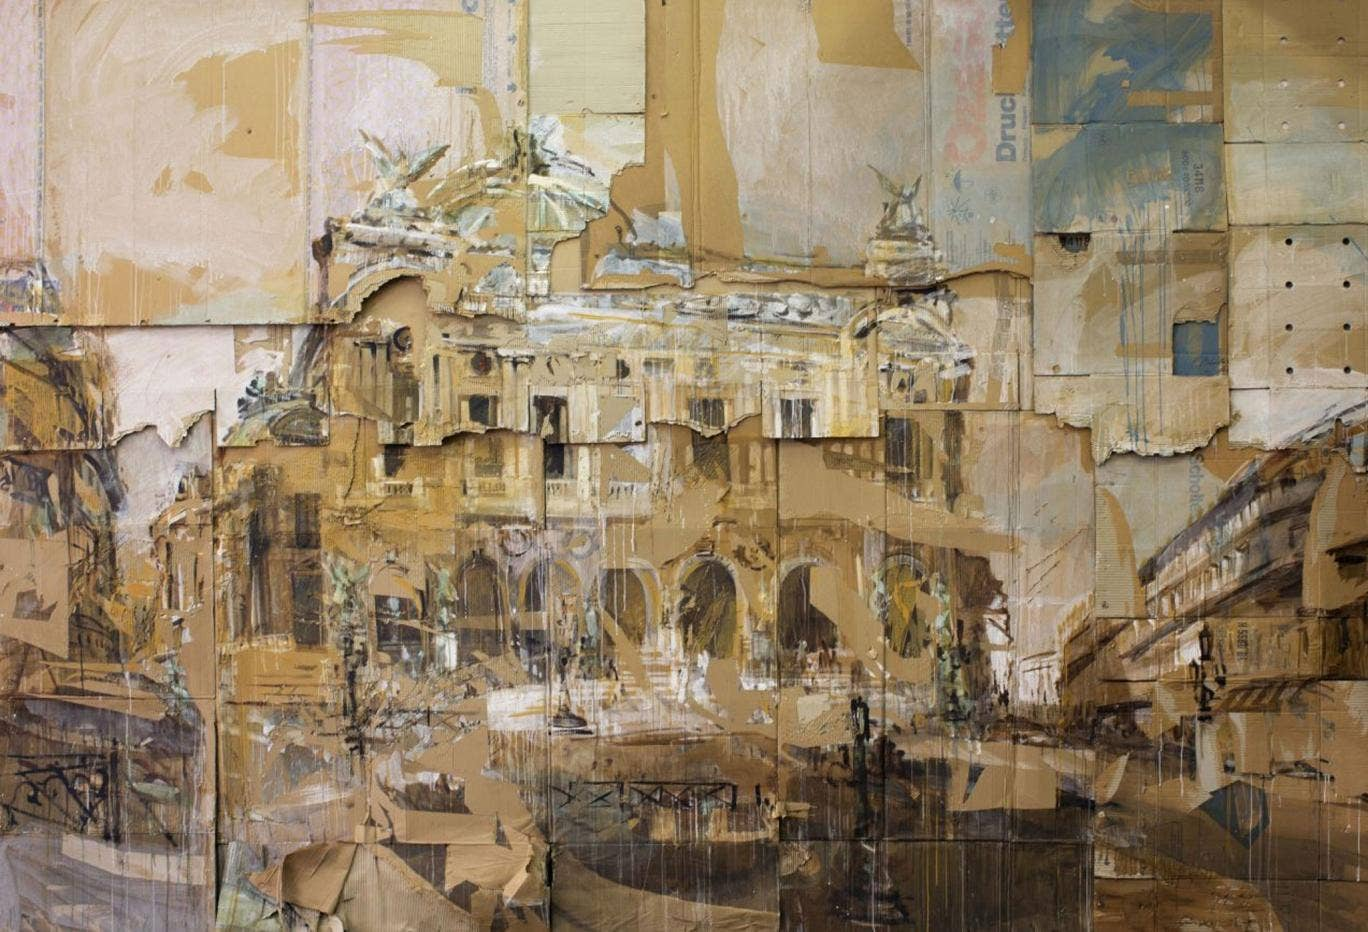 Paris by Valery Koshlyakov is one of the show's highlights